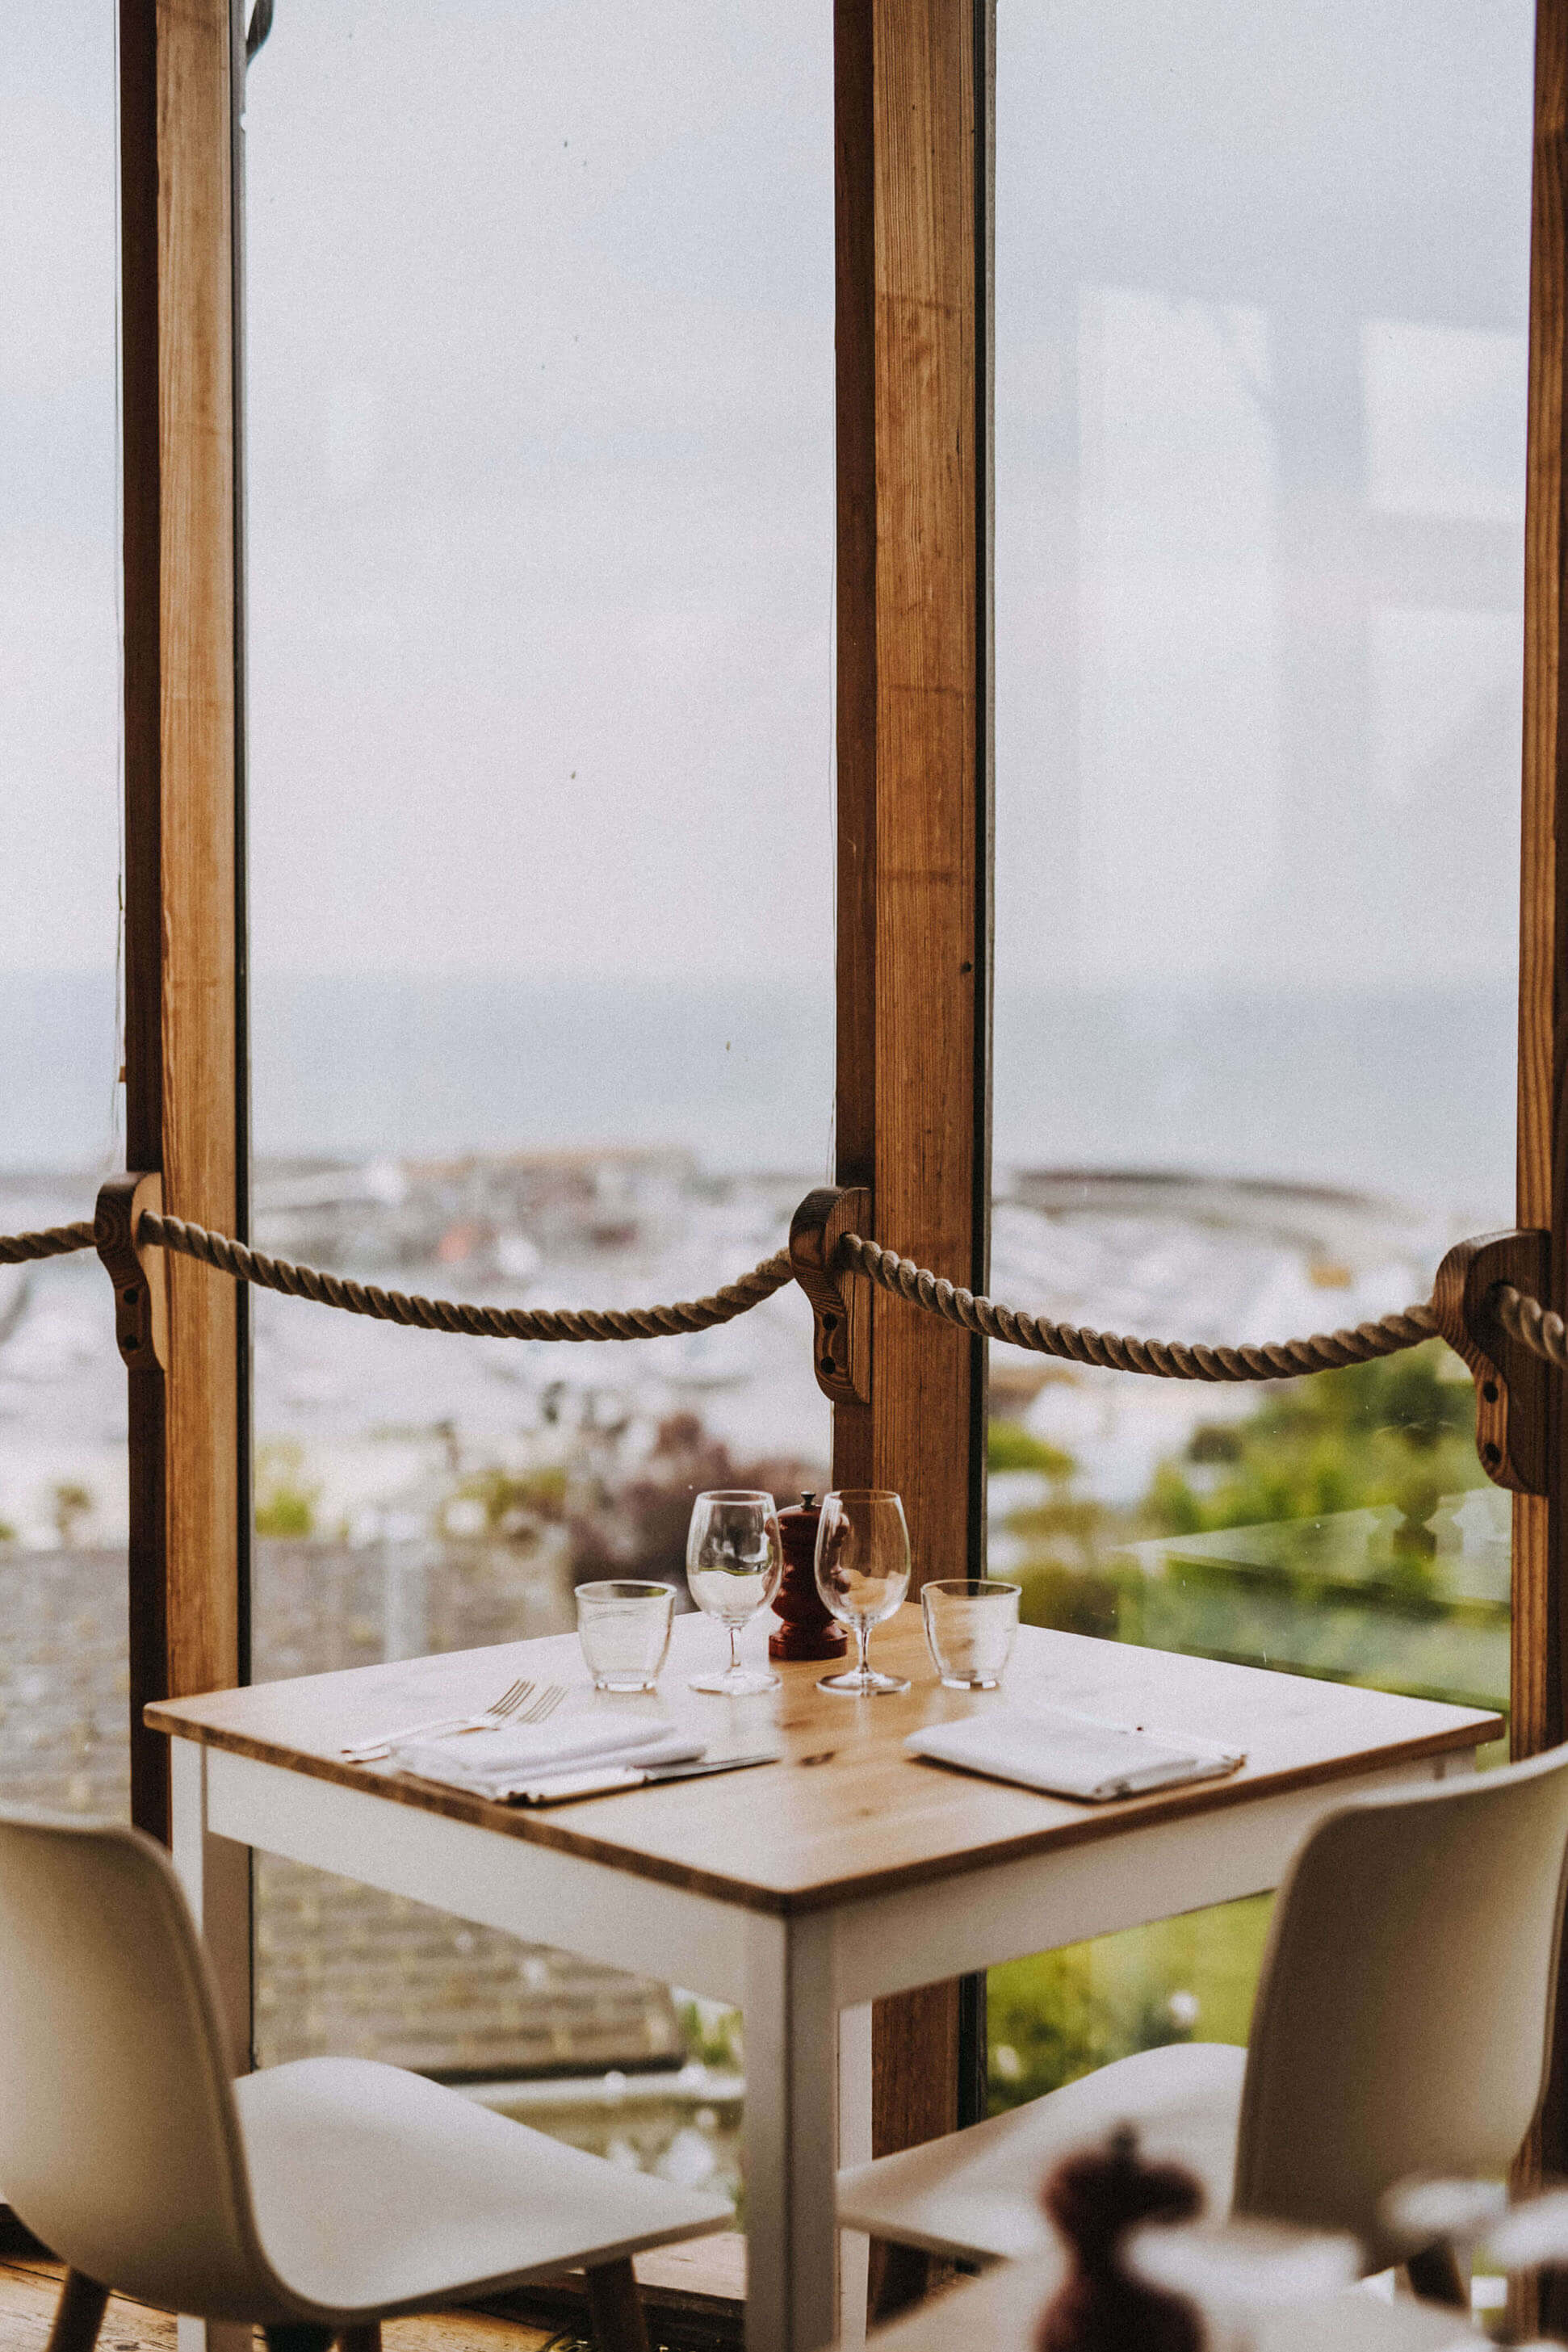 Dining table view over ocean